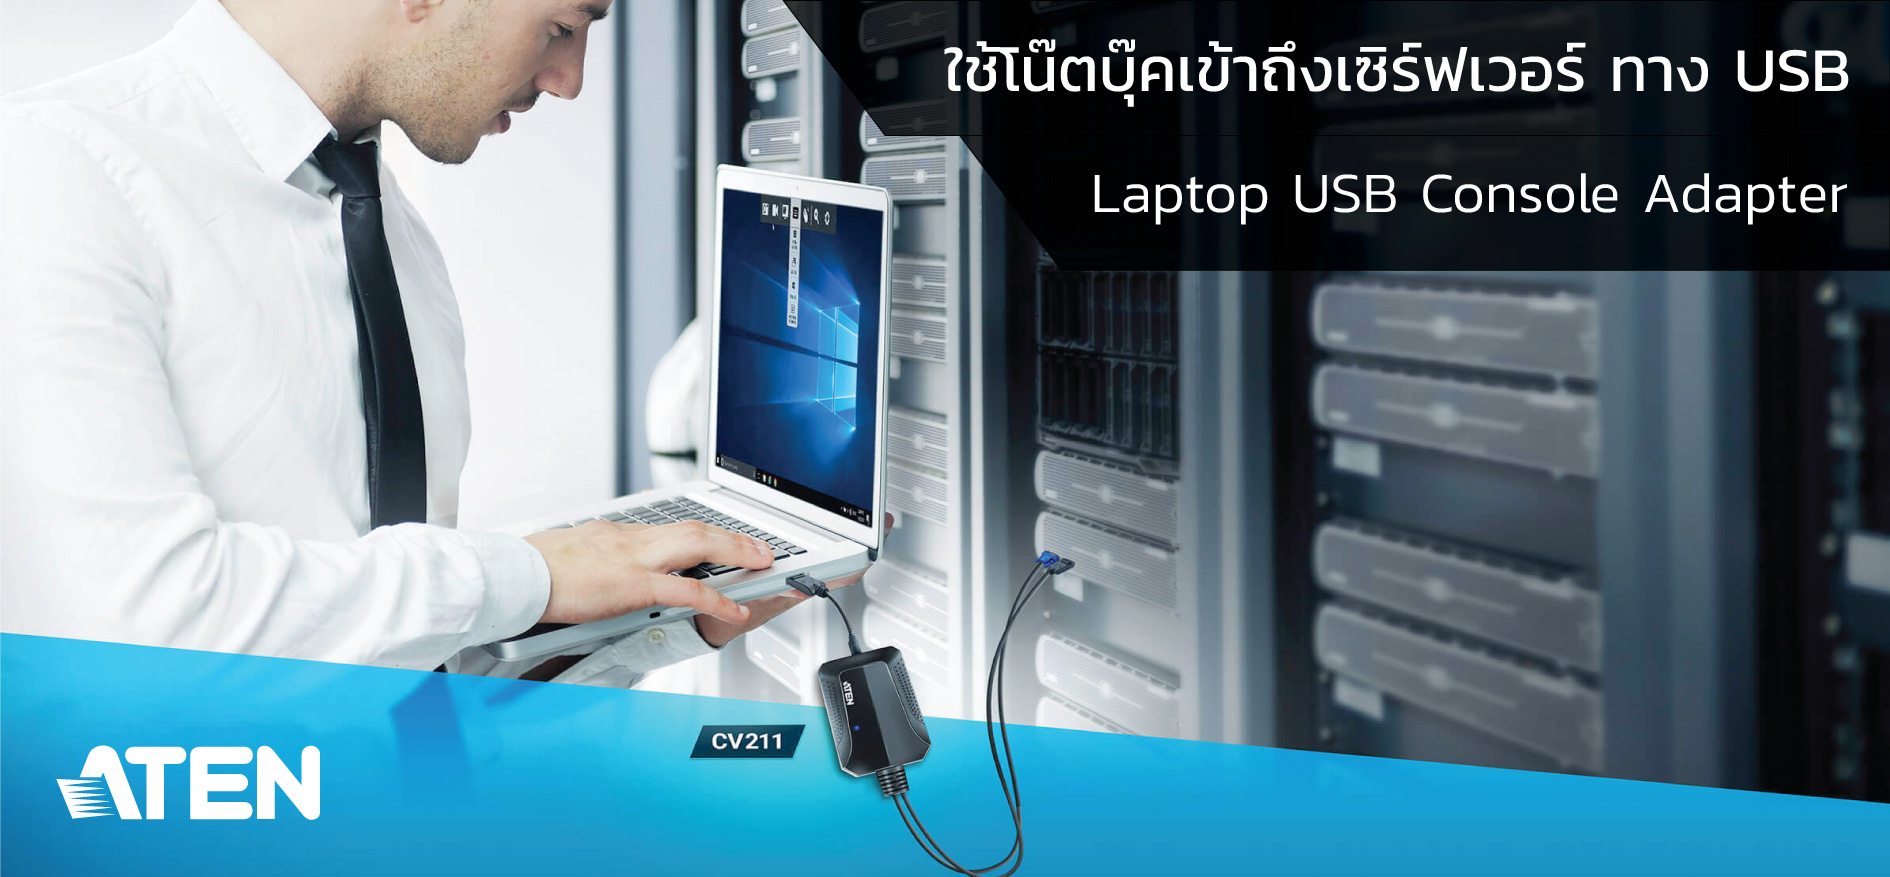 Laptop USB Console